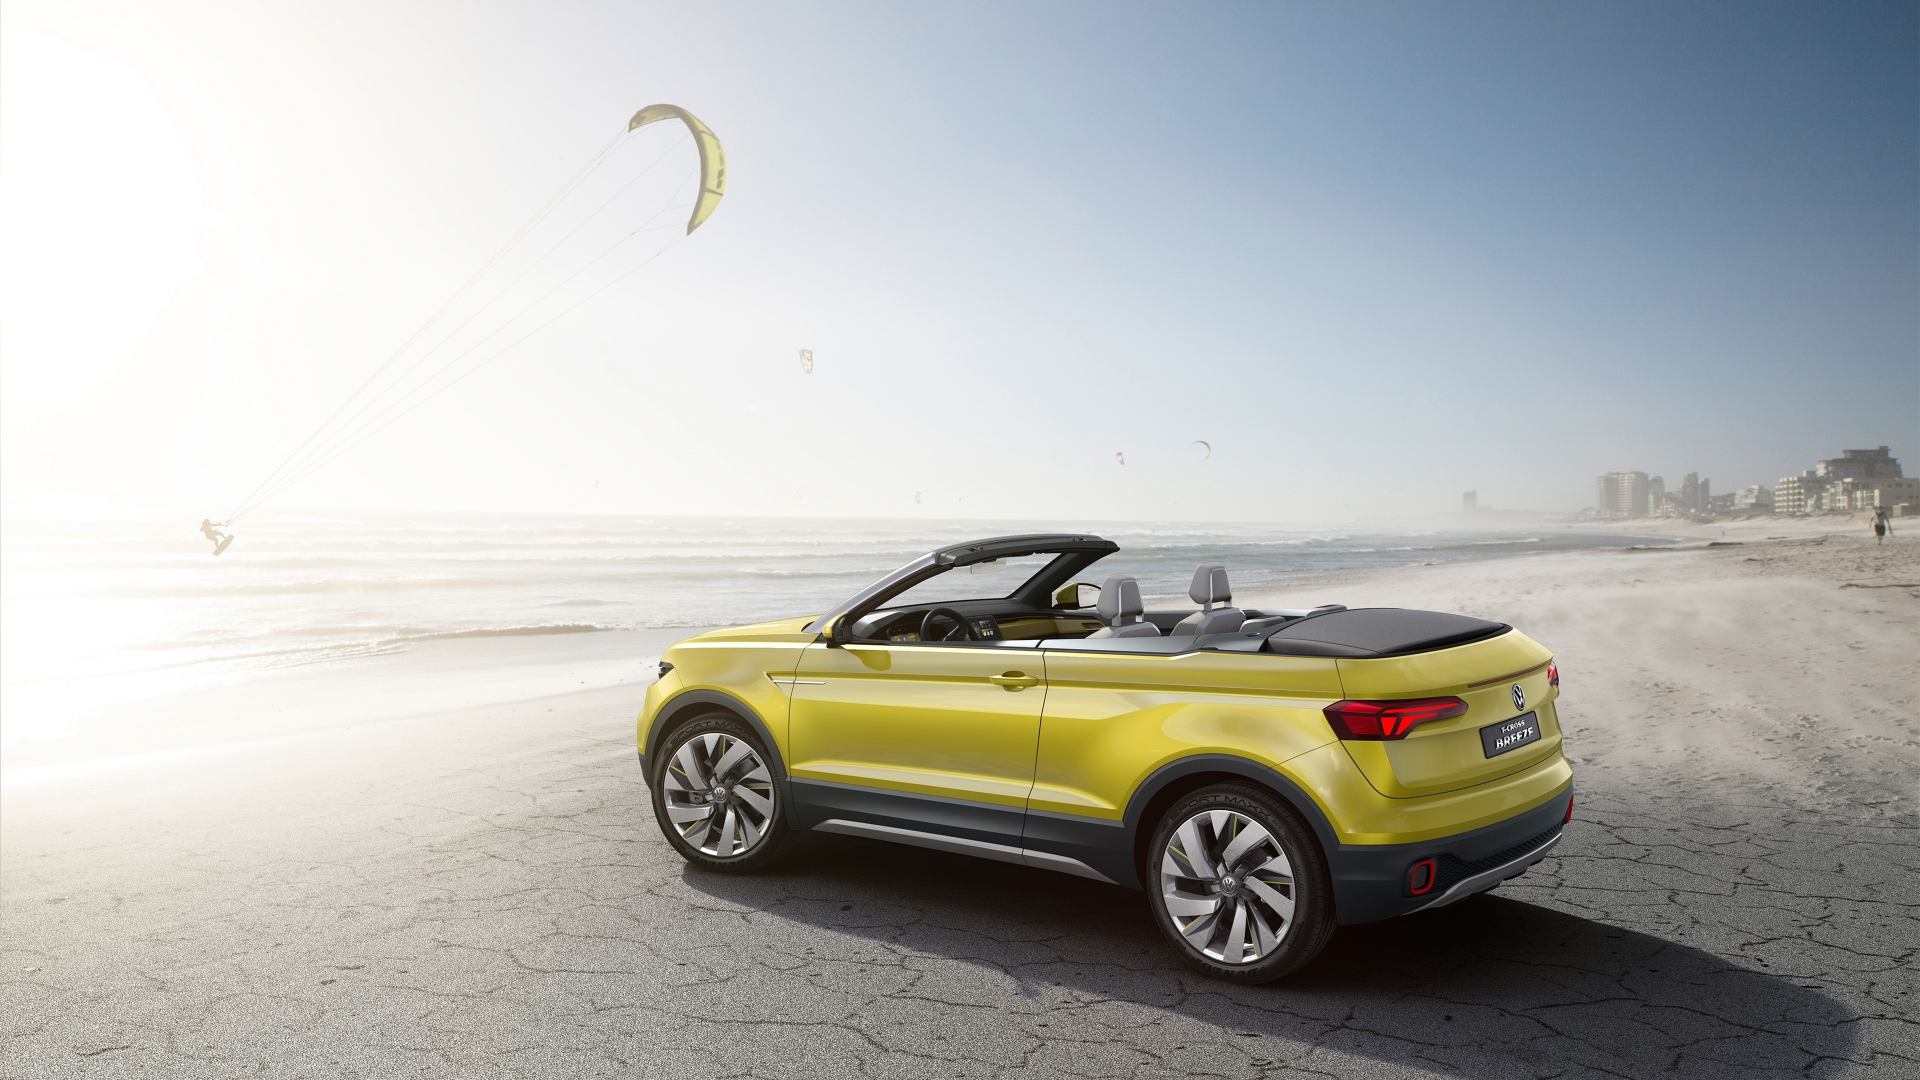 Volkswagen T-Cross Breeze Concept 2016 - Photo 03 - Taille: 1920x1080